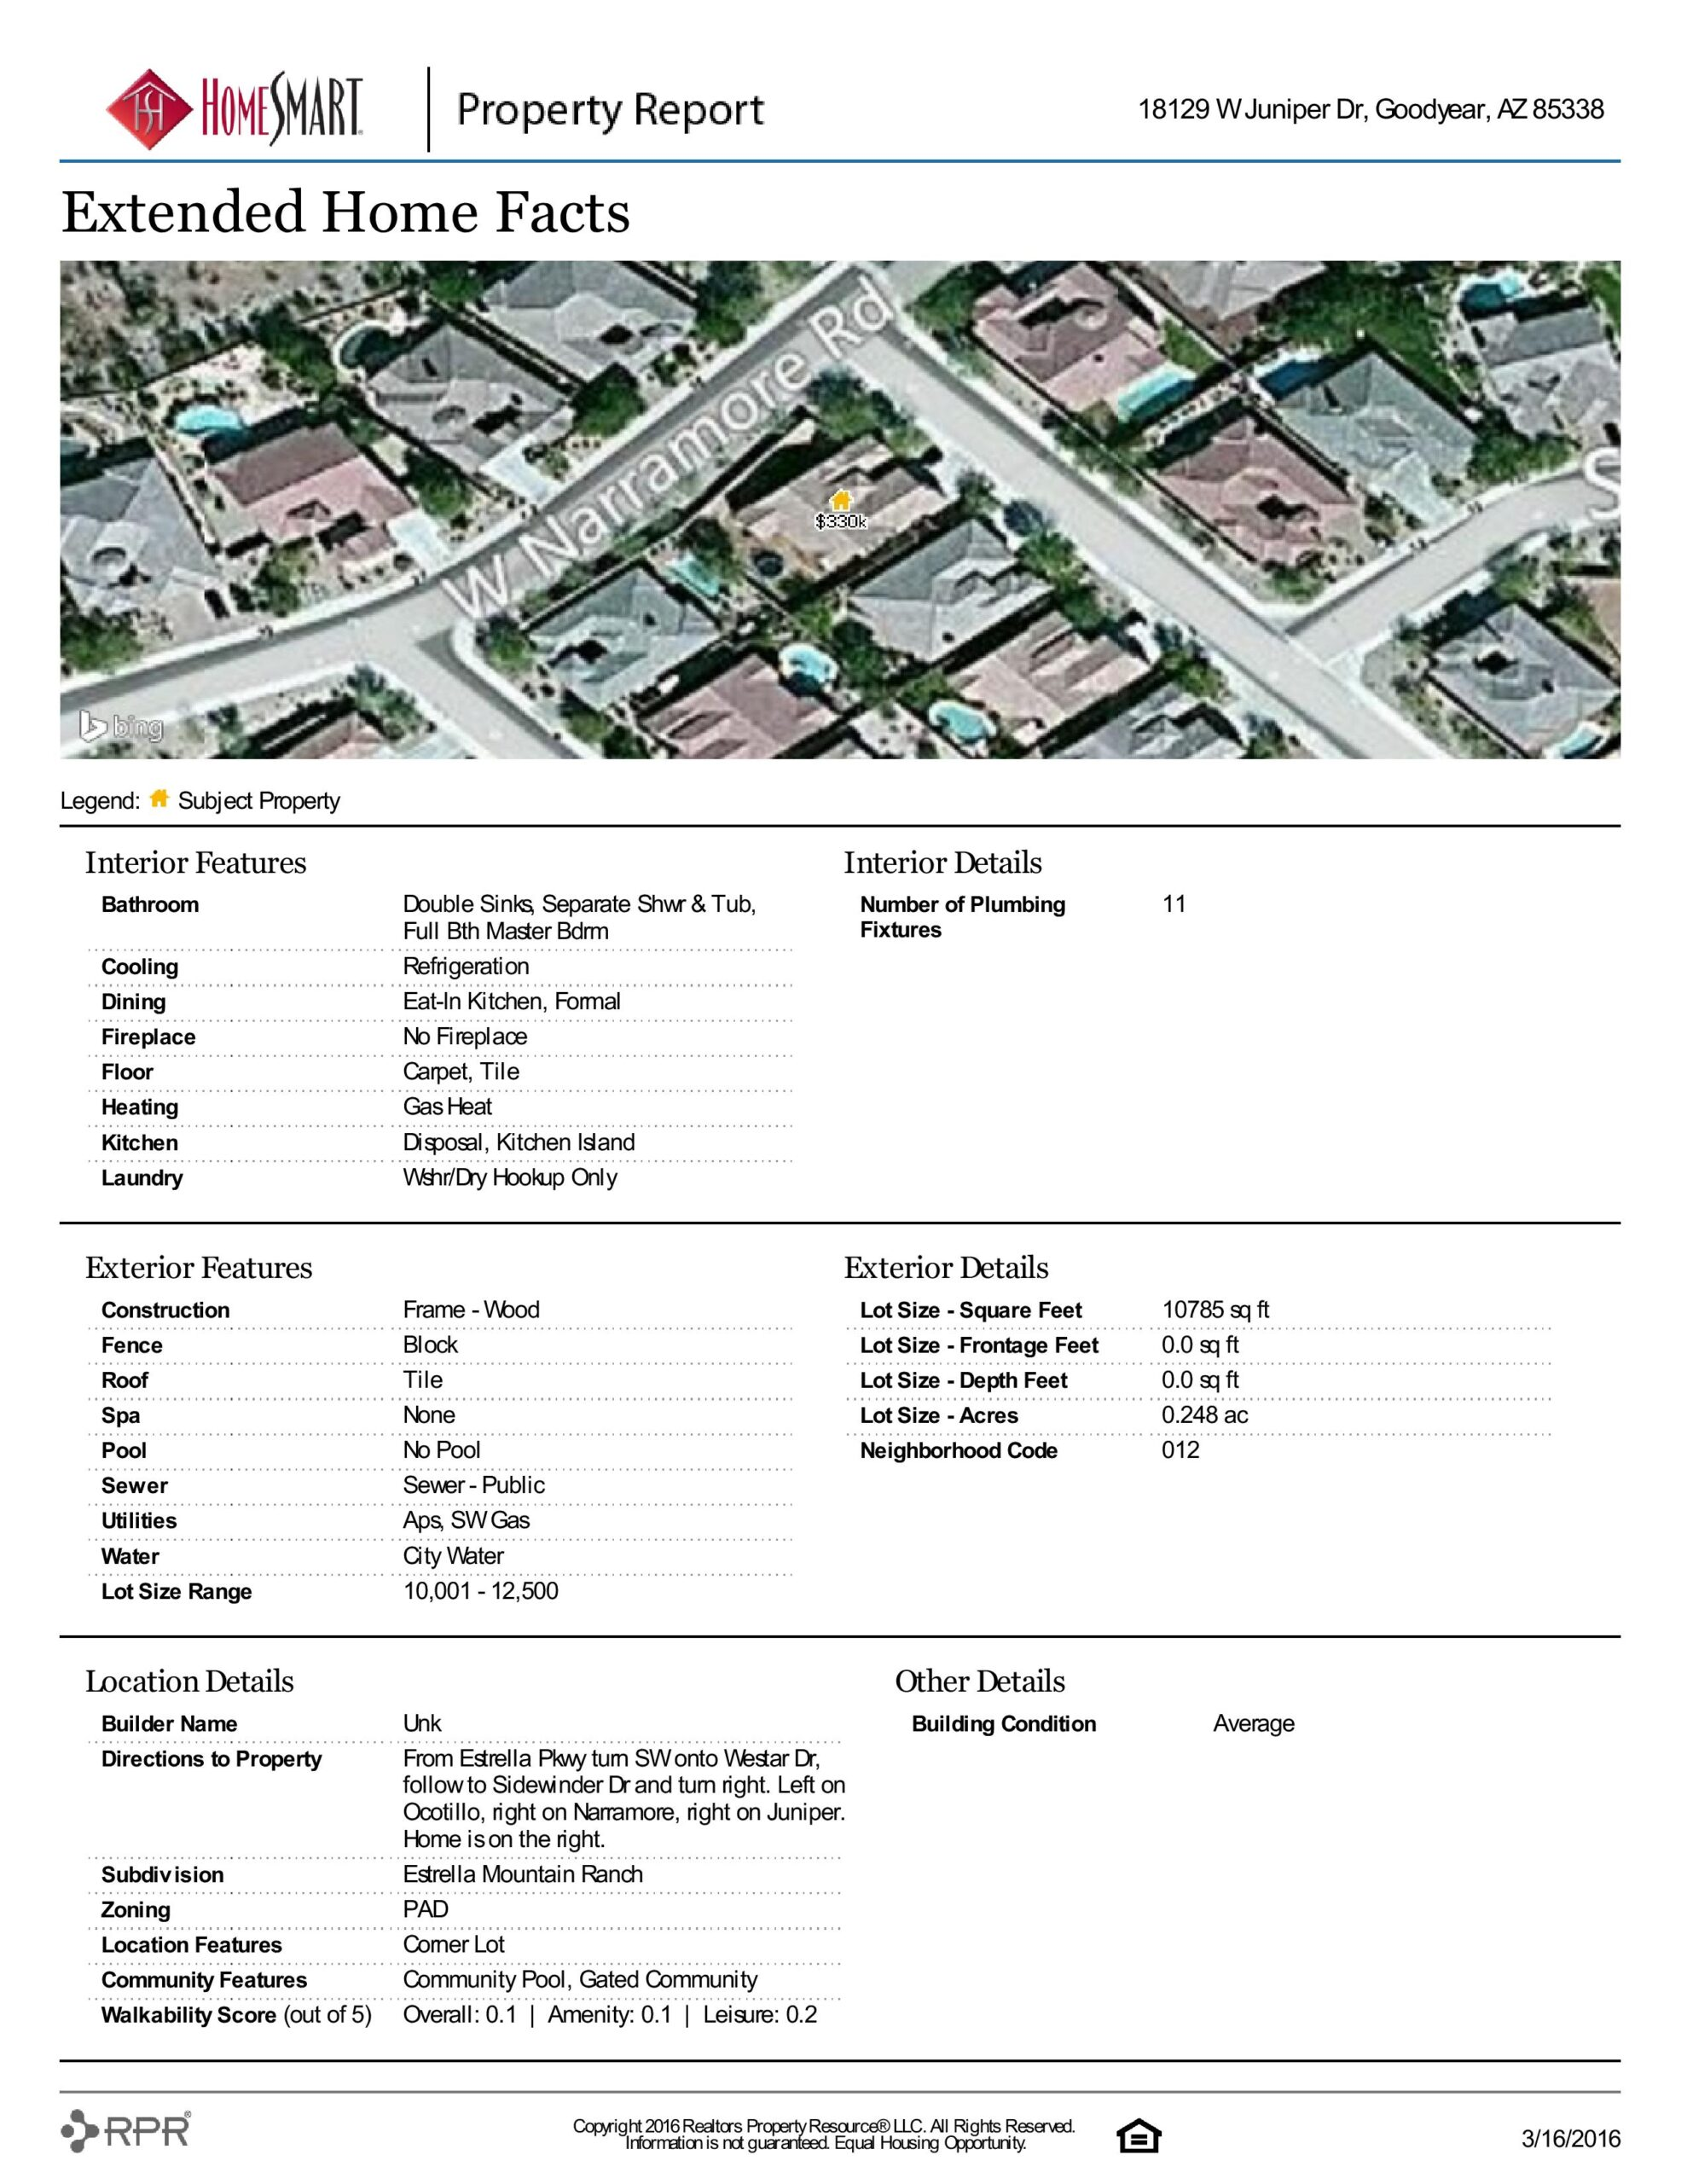 18129 W JUNIPER DR PROPERTY REPORT-page-004